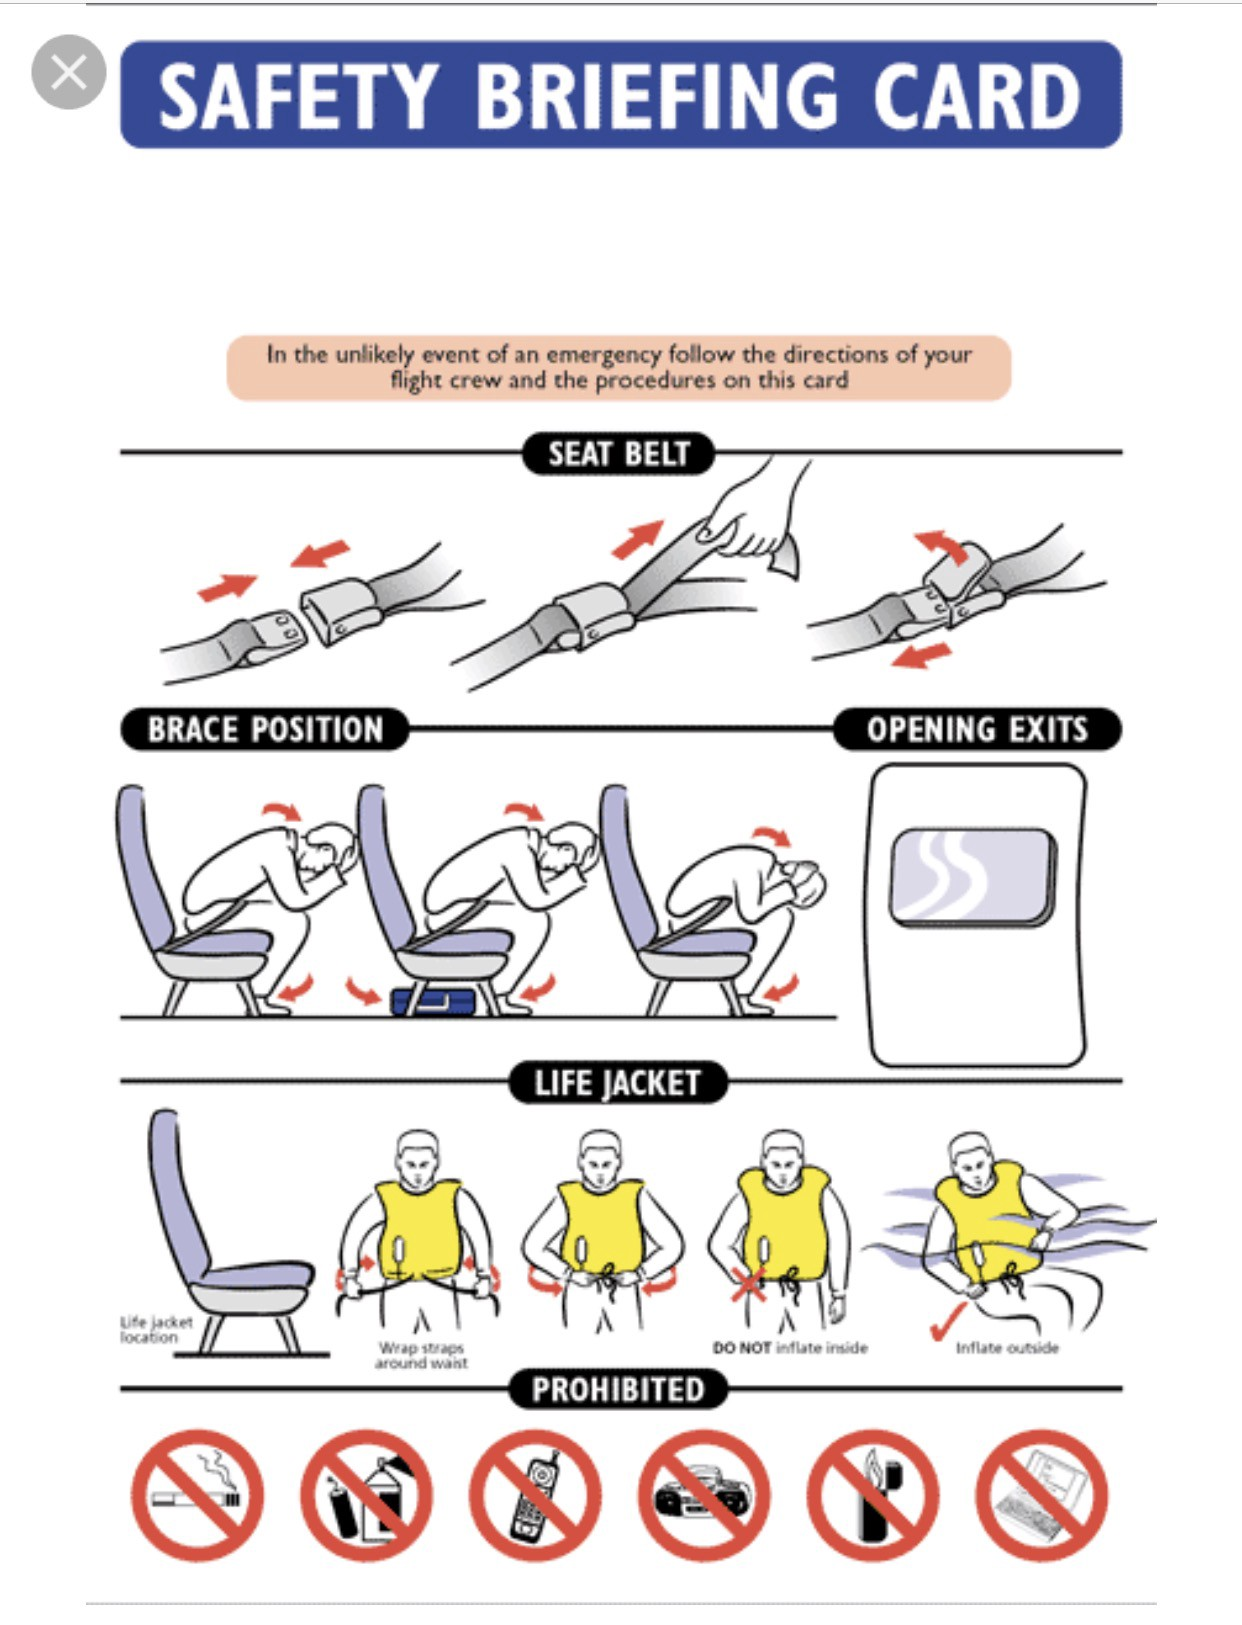 Brace yourself in defense of hysterical flight attendants solutioingenieria Images